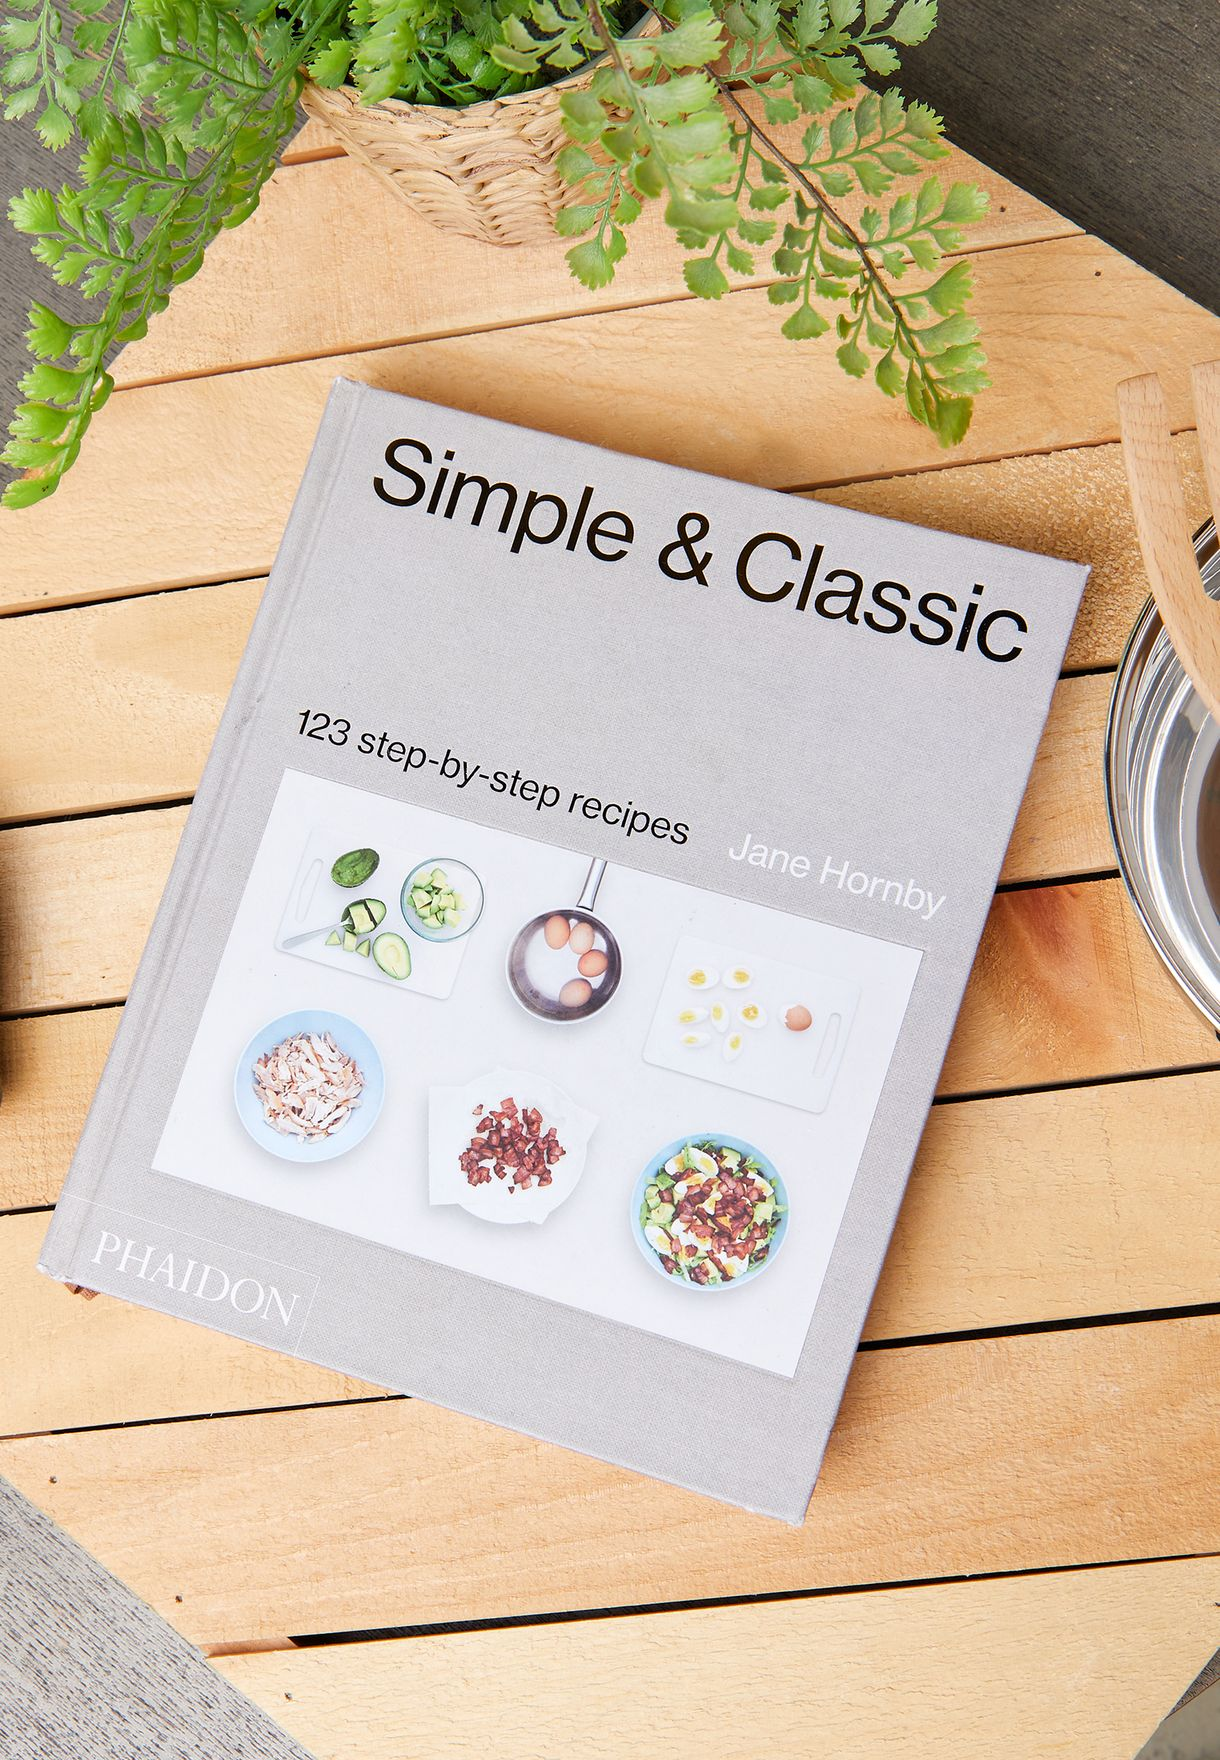 Simple and Classic Book